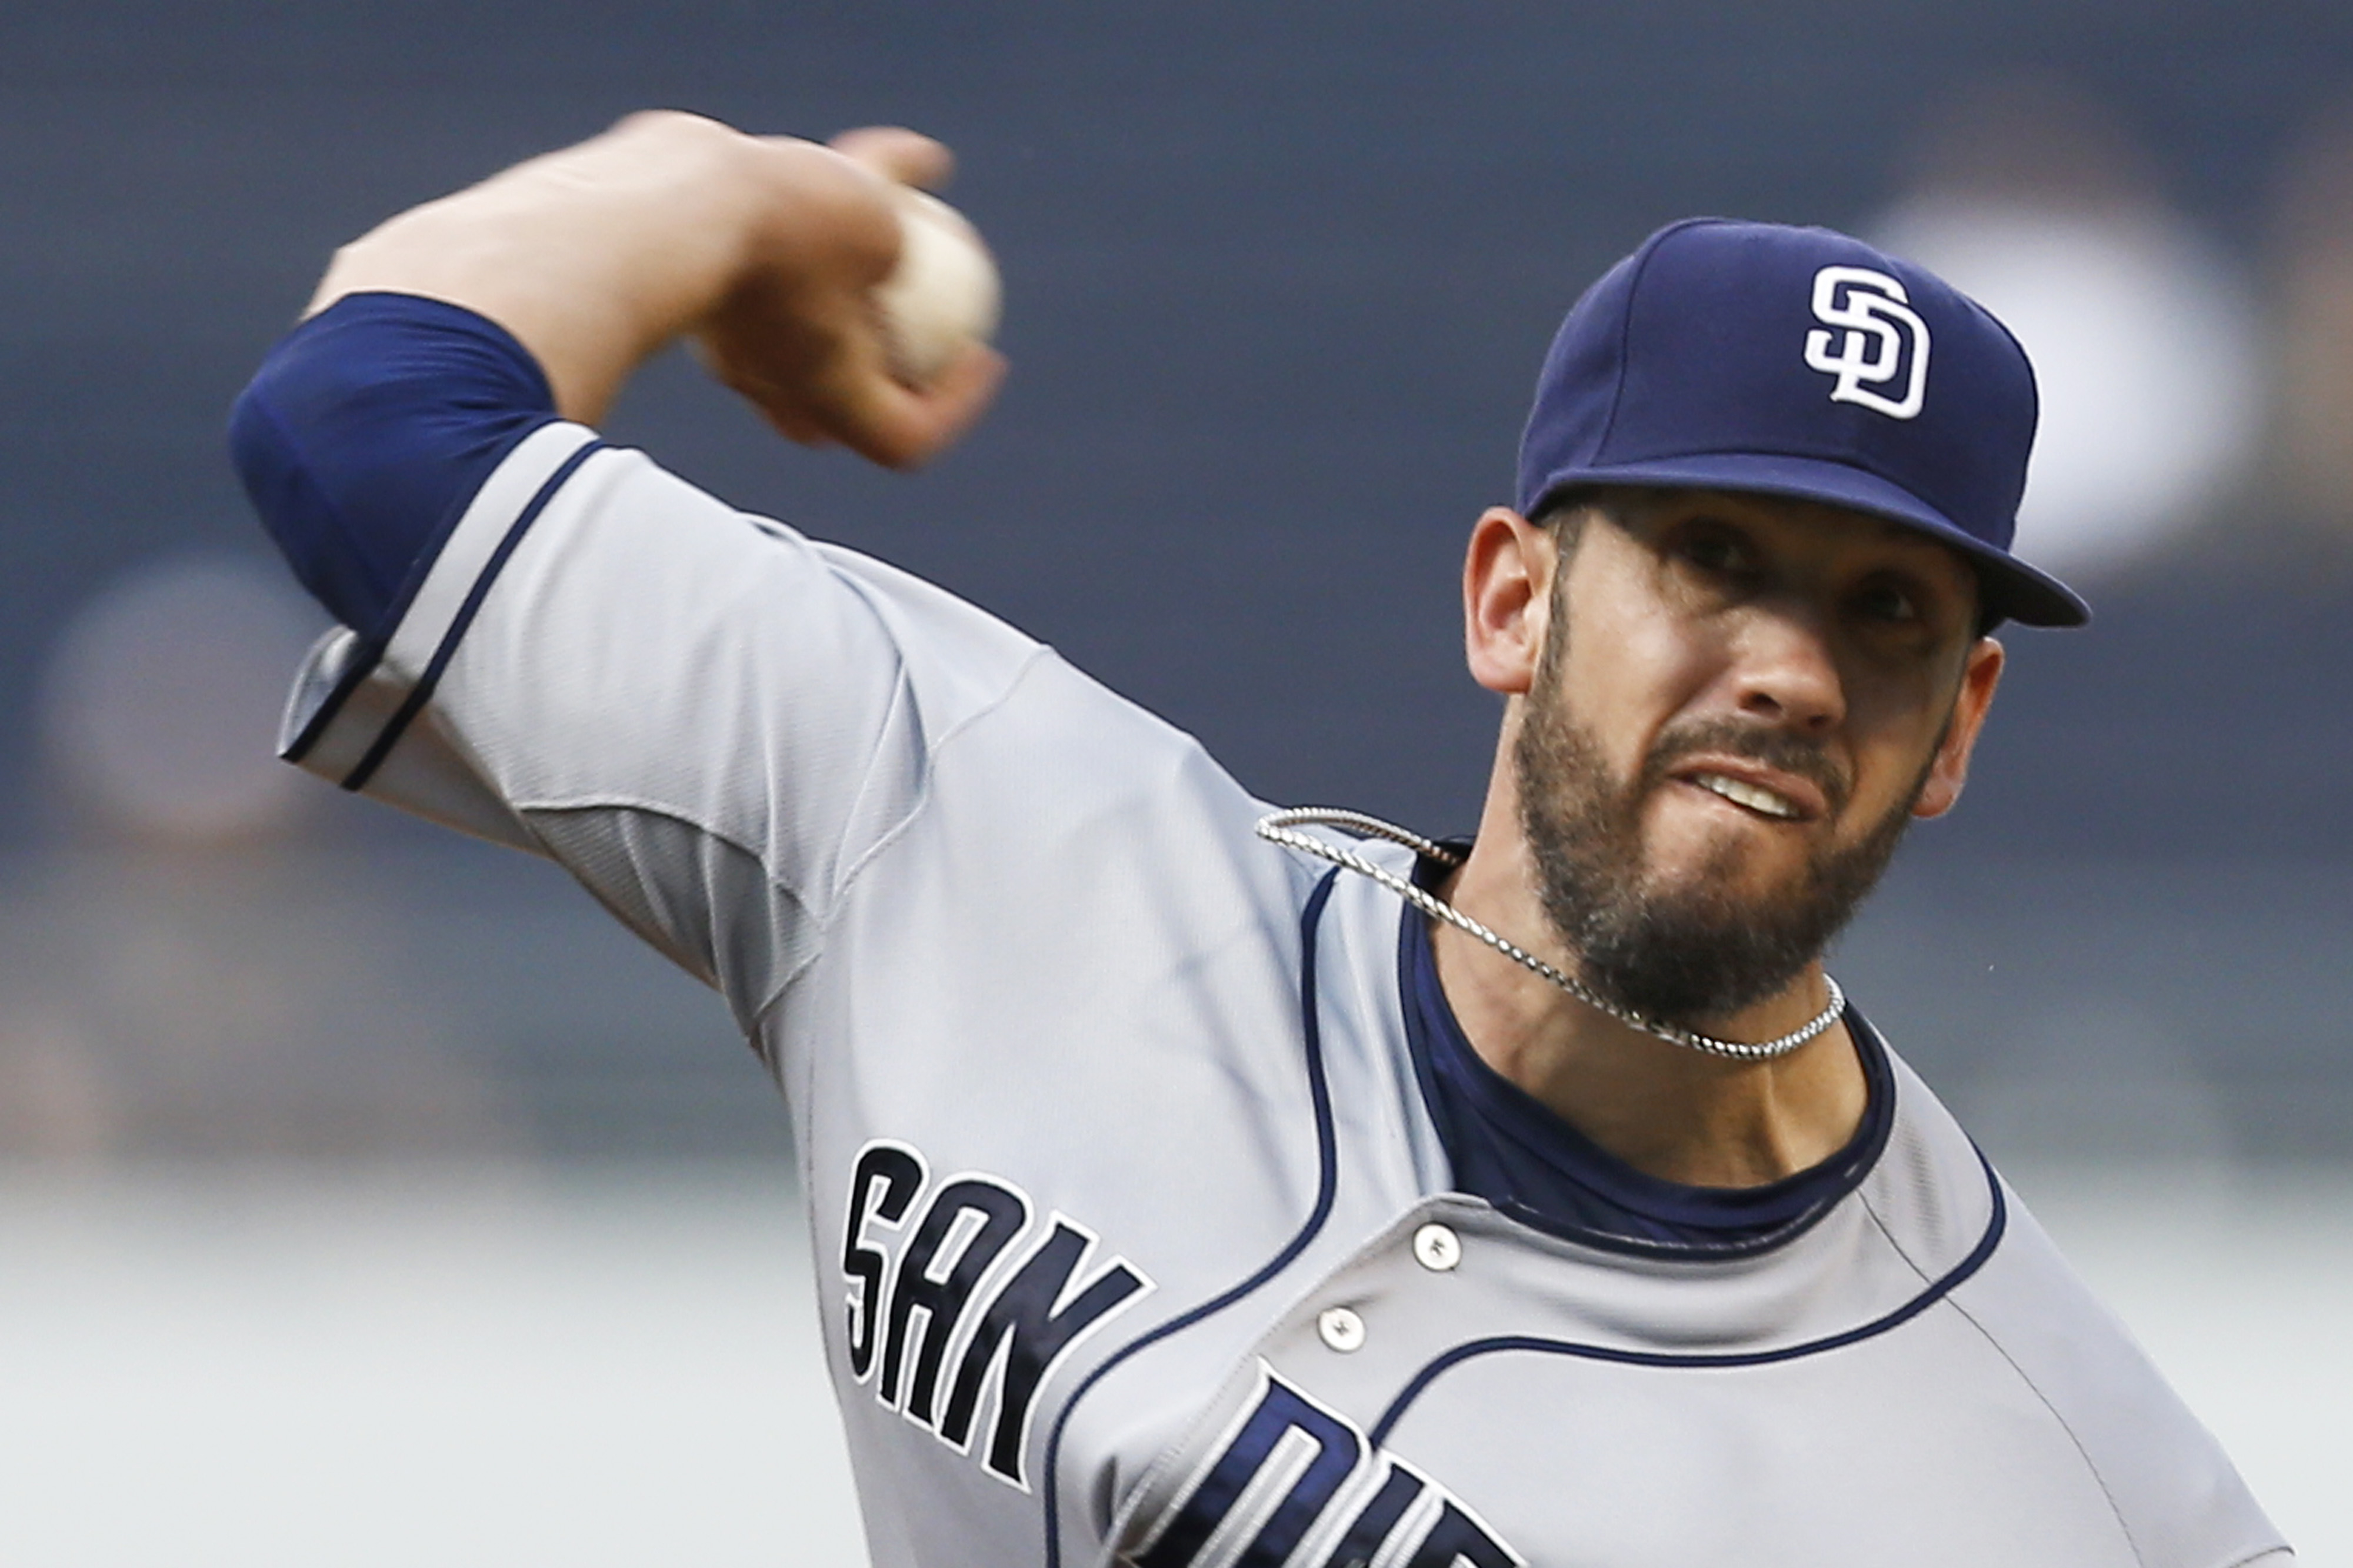 San Diego Padres starting pitcher James Shields throws against the Pittsburgh Pirates in the first inning of a baseball game, Monday, July 6, 2015, in Pittsburgh. (AP Photo/Keith Srakocic)